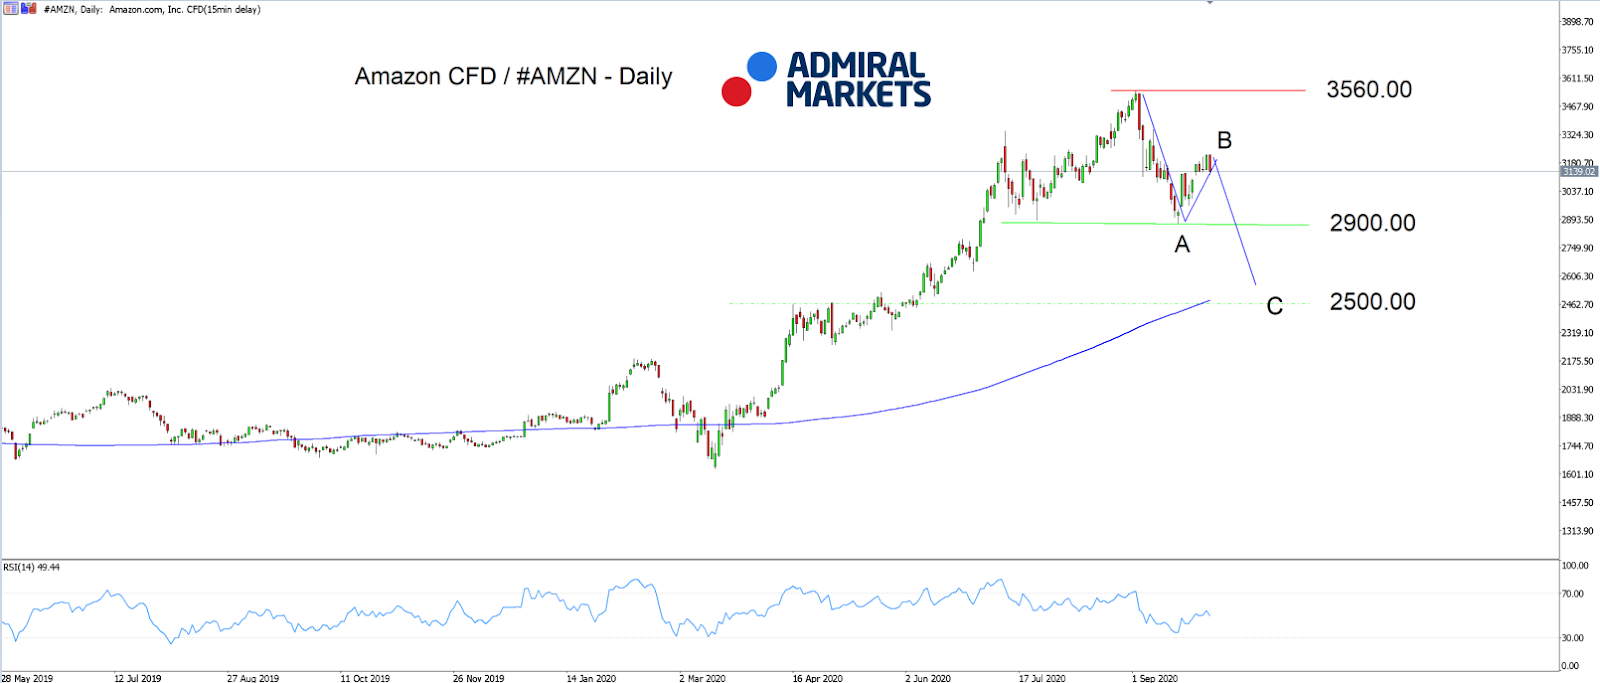 Admiral Markets MT5 with MT5SE Add-on #AMZN CFD Daily chart